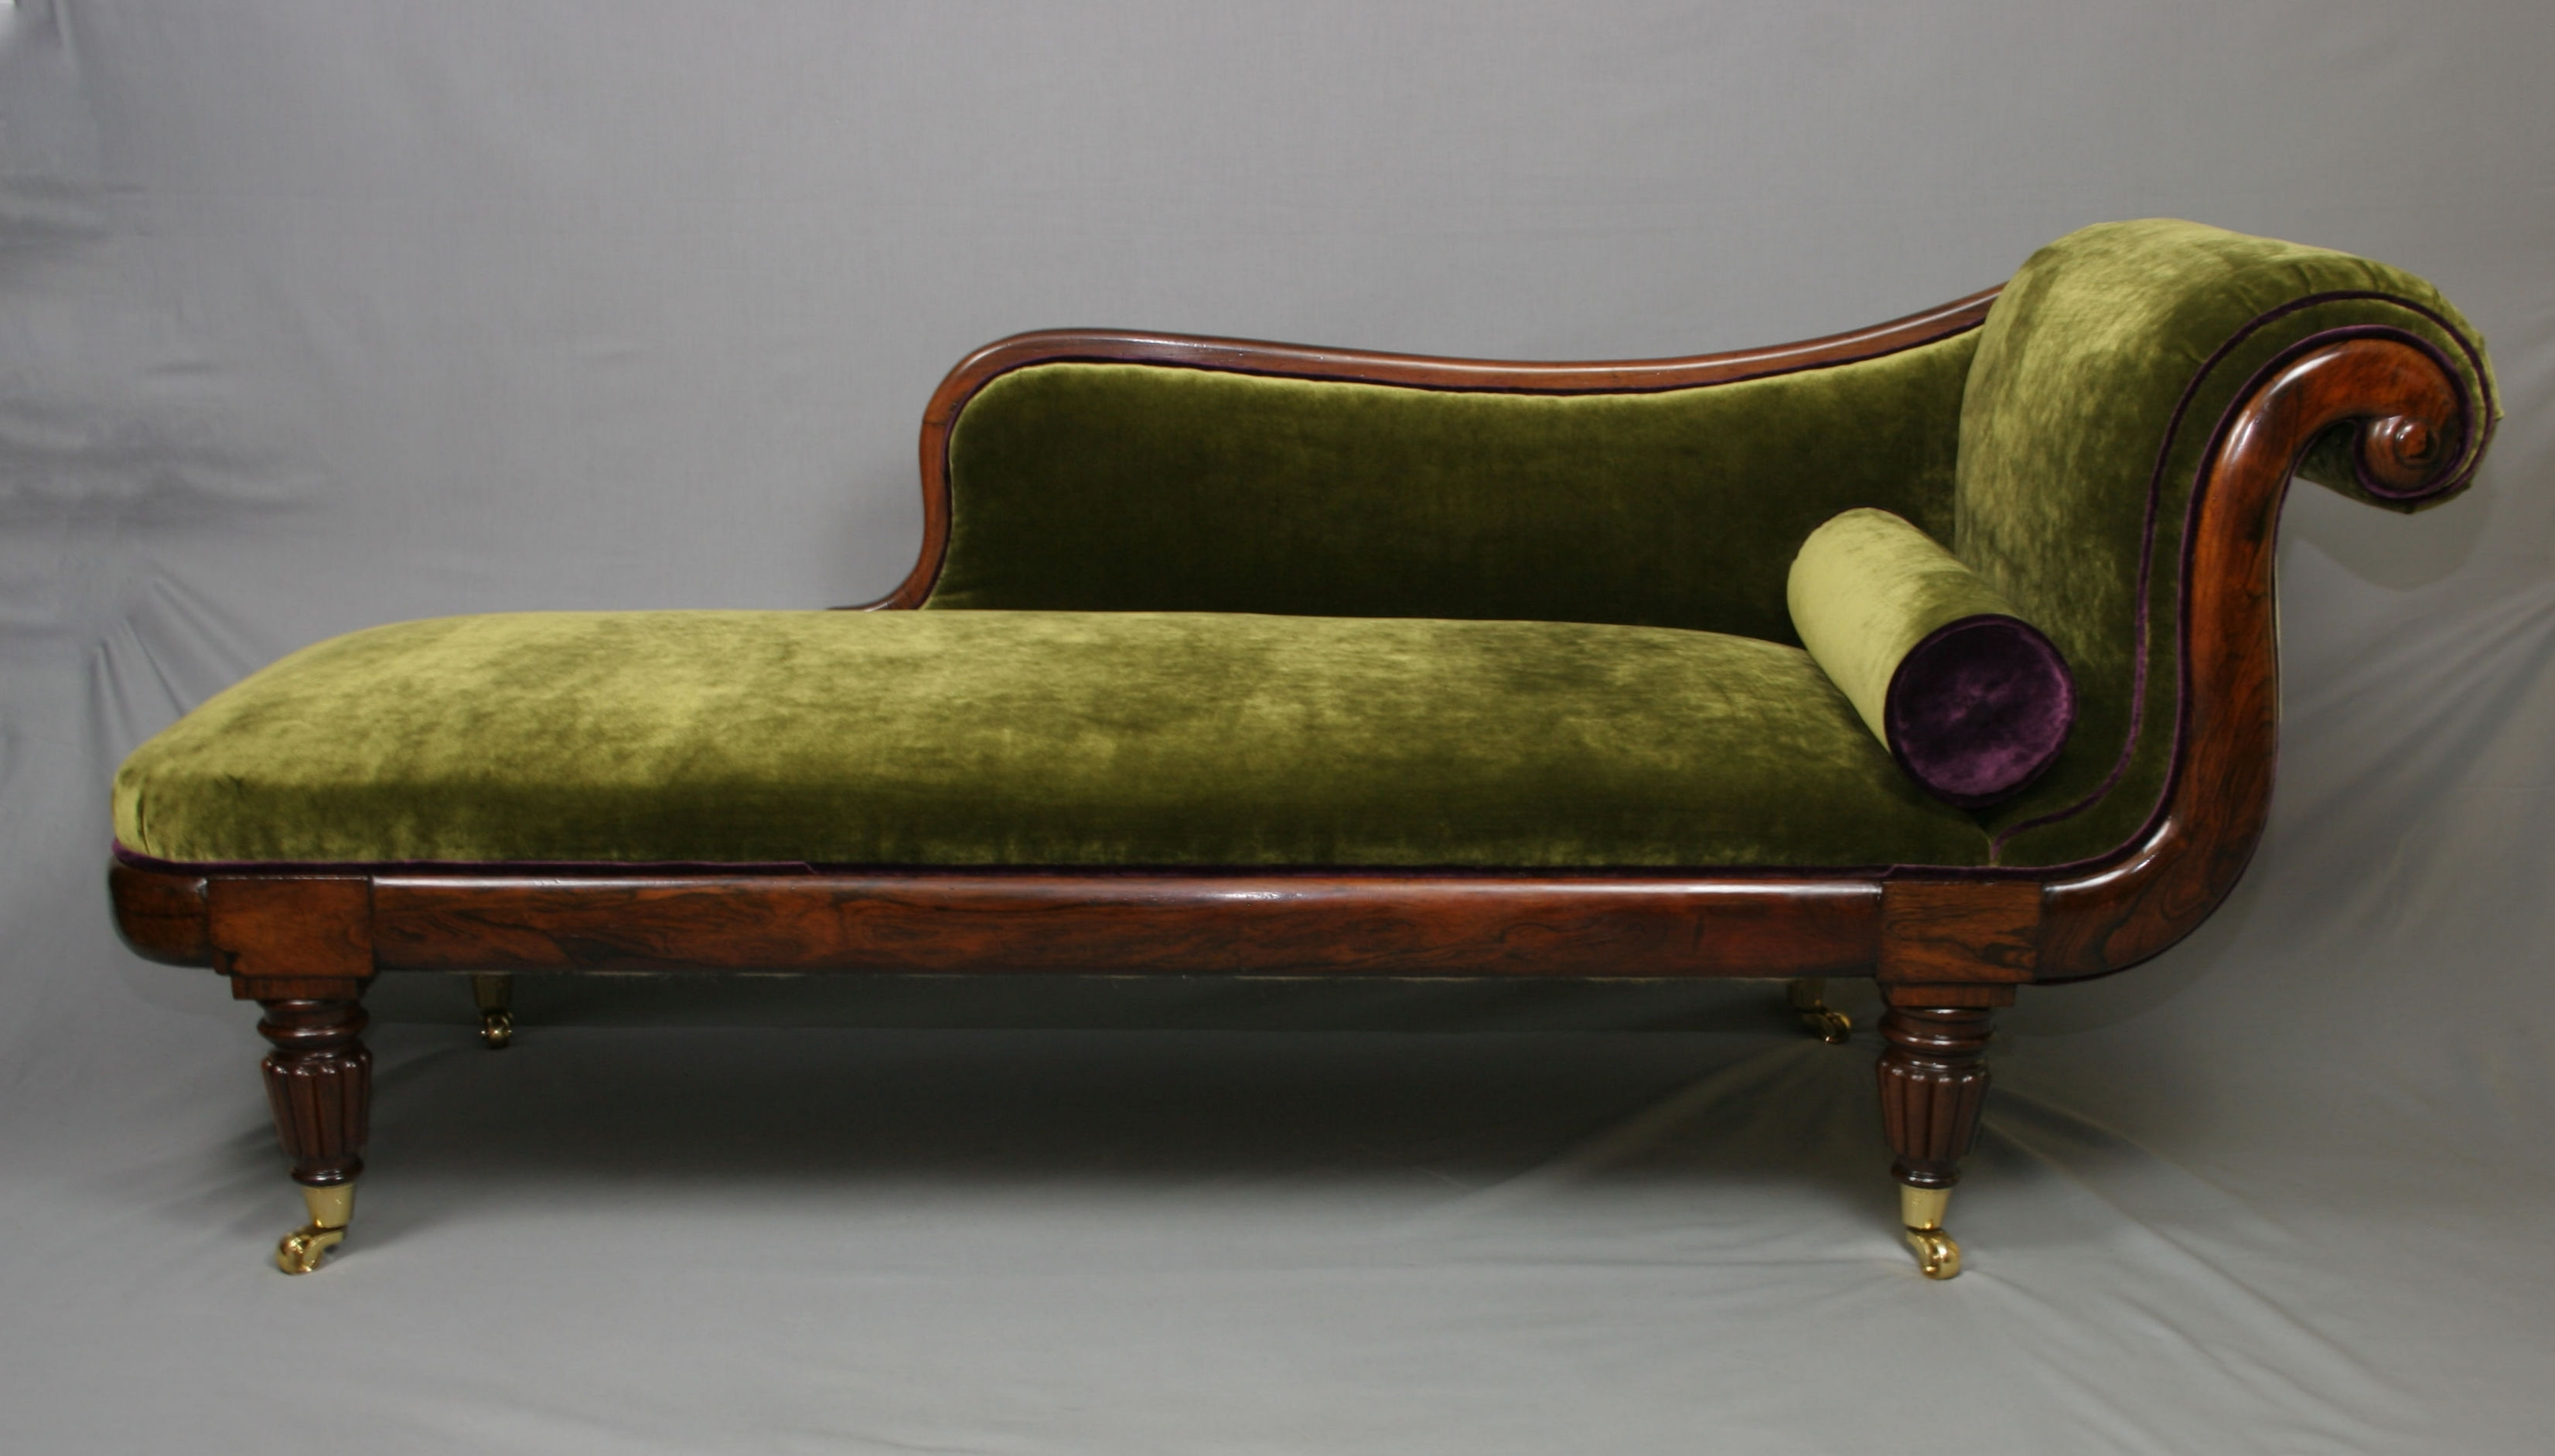 Antique Chaise Lounge Chairs Intended For Well Known Antique Chaise Lounge Chairs For Sale – Antique William Iv (View 14 of 15)